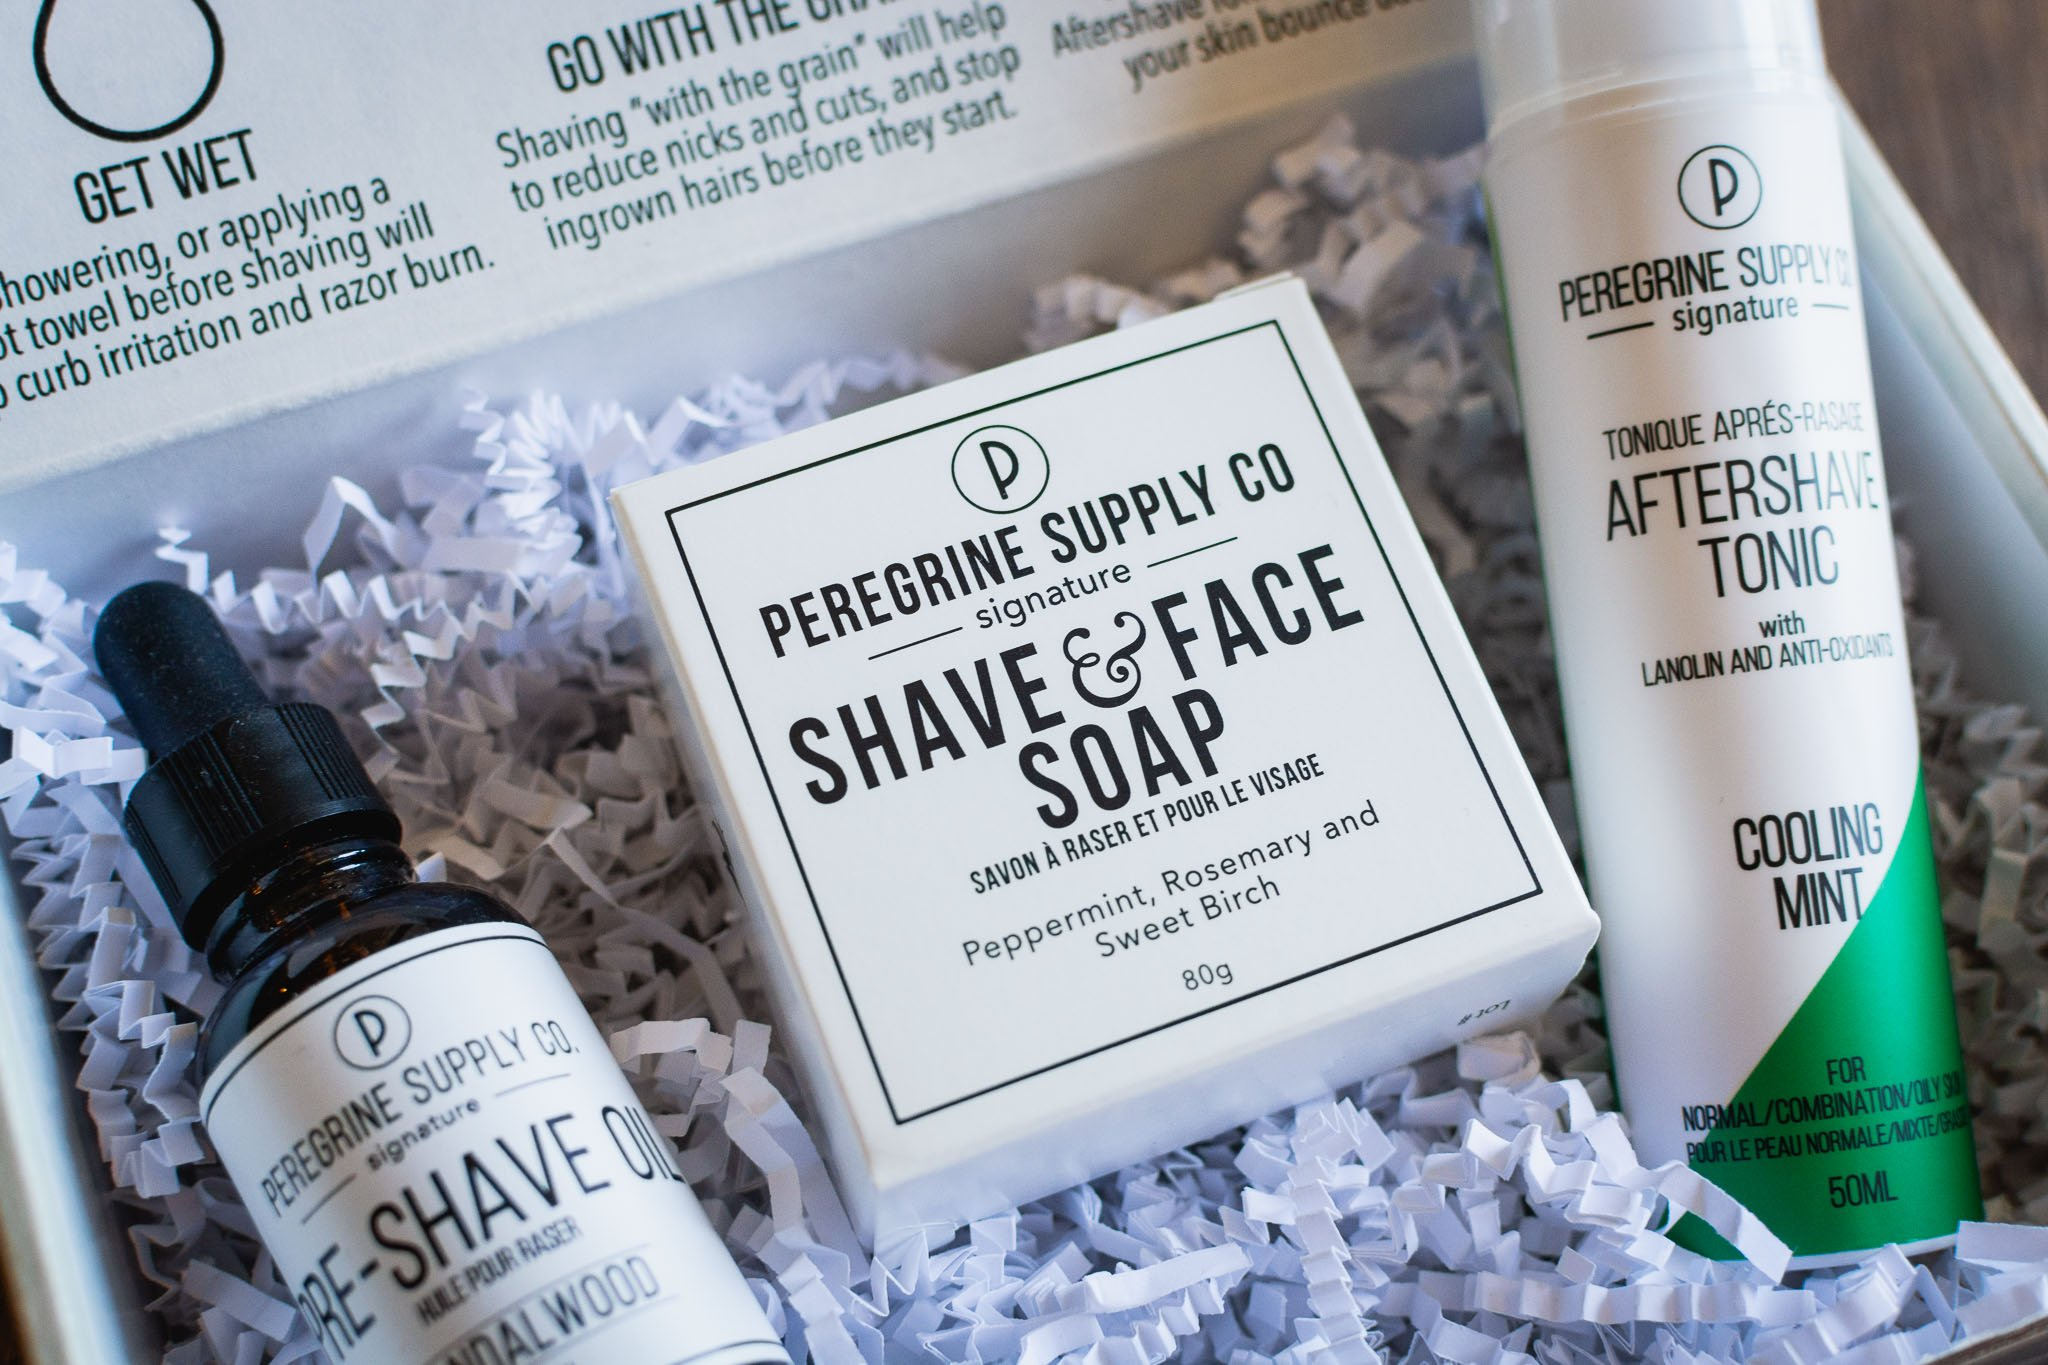 Shave Box Care Set by Peregrine Supply Co